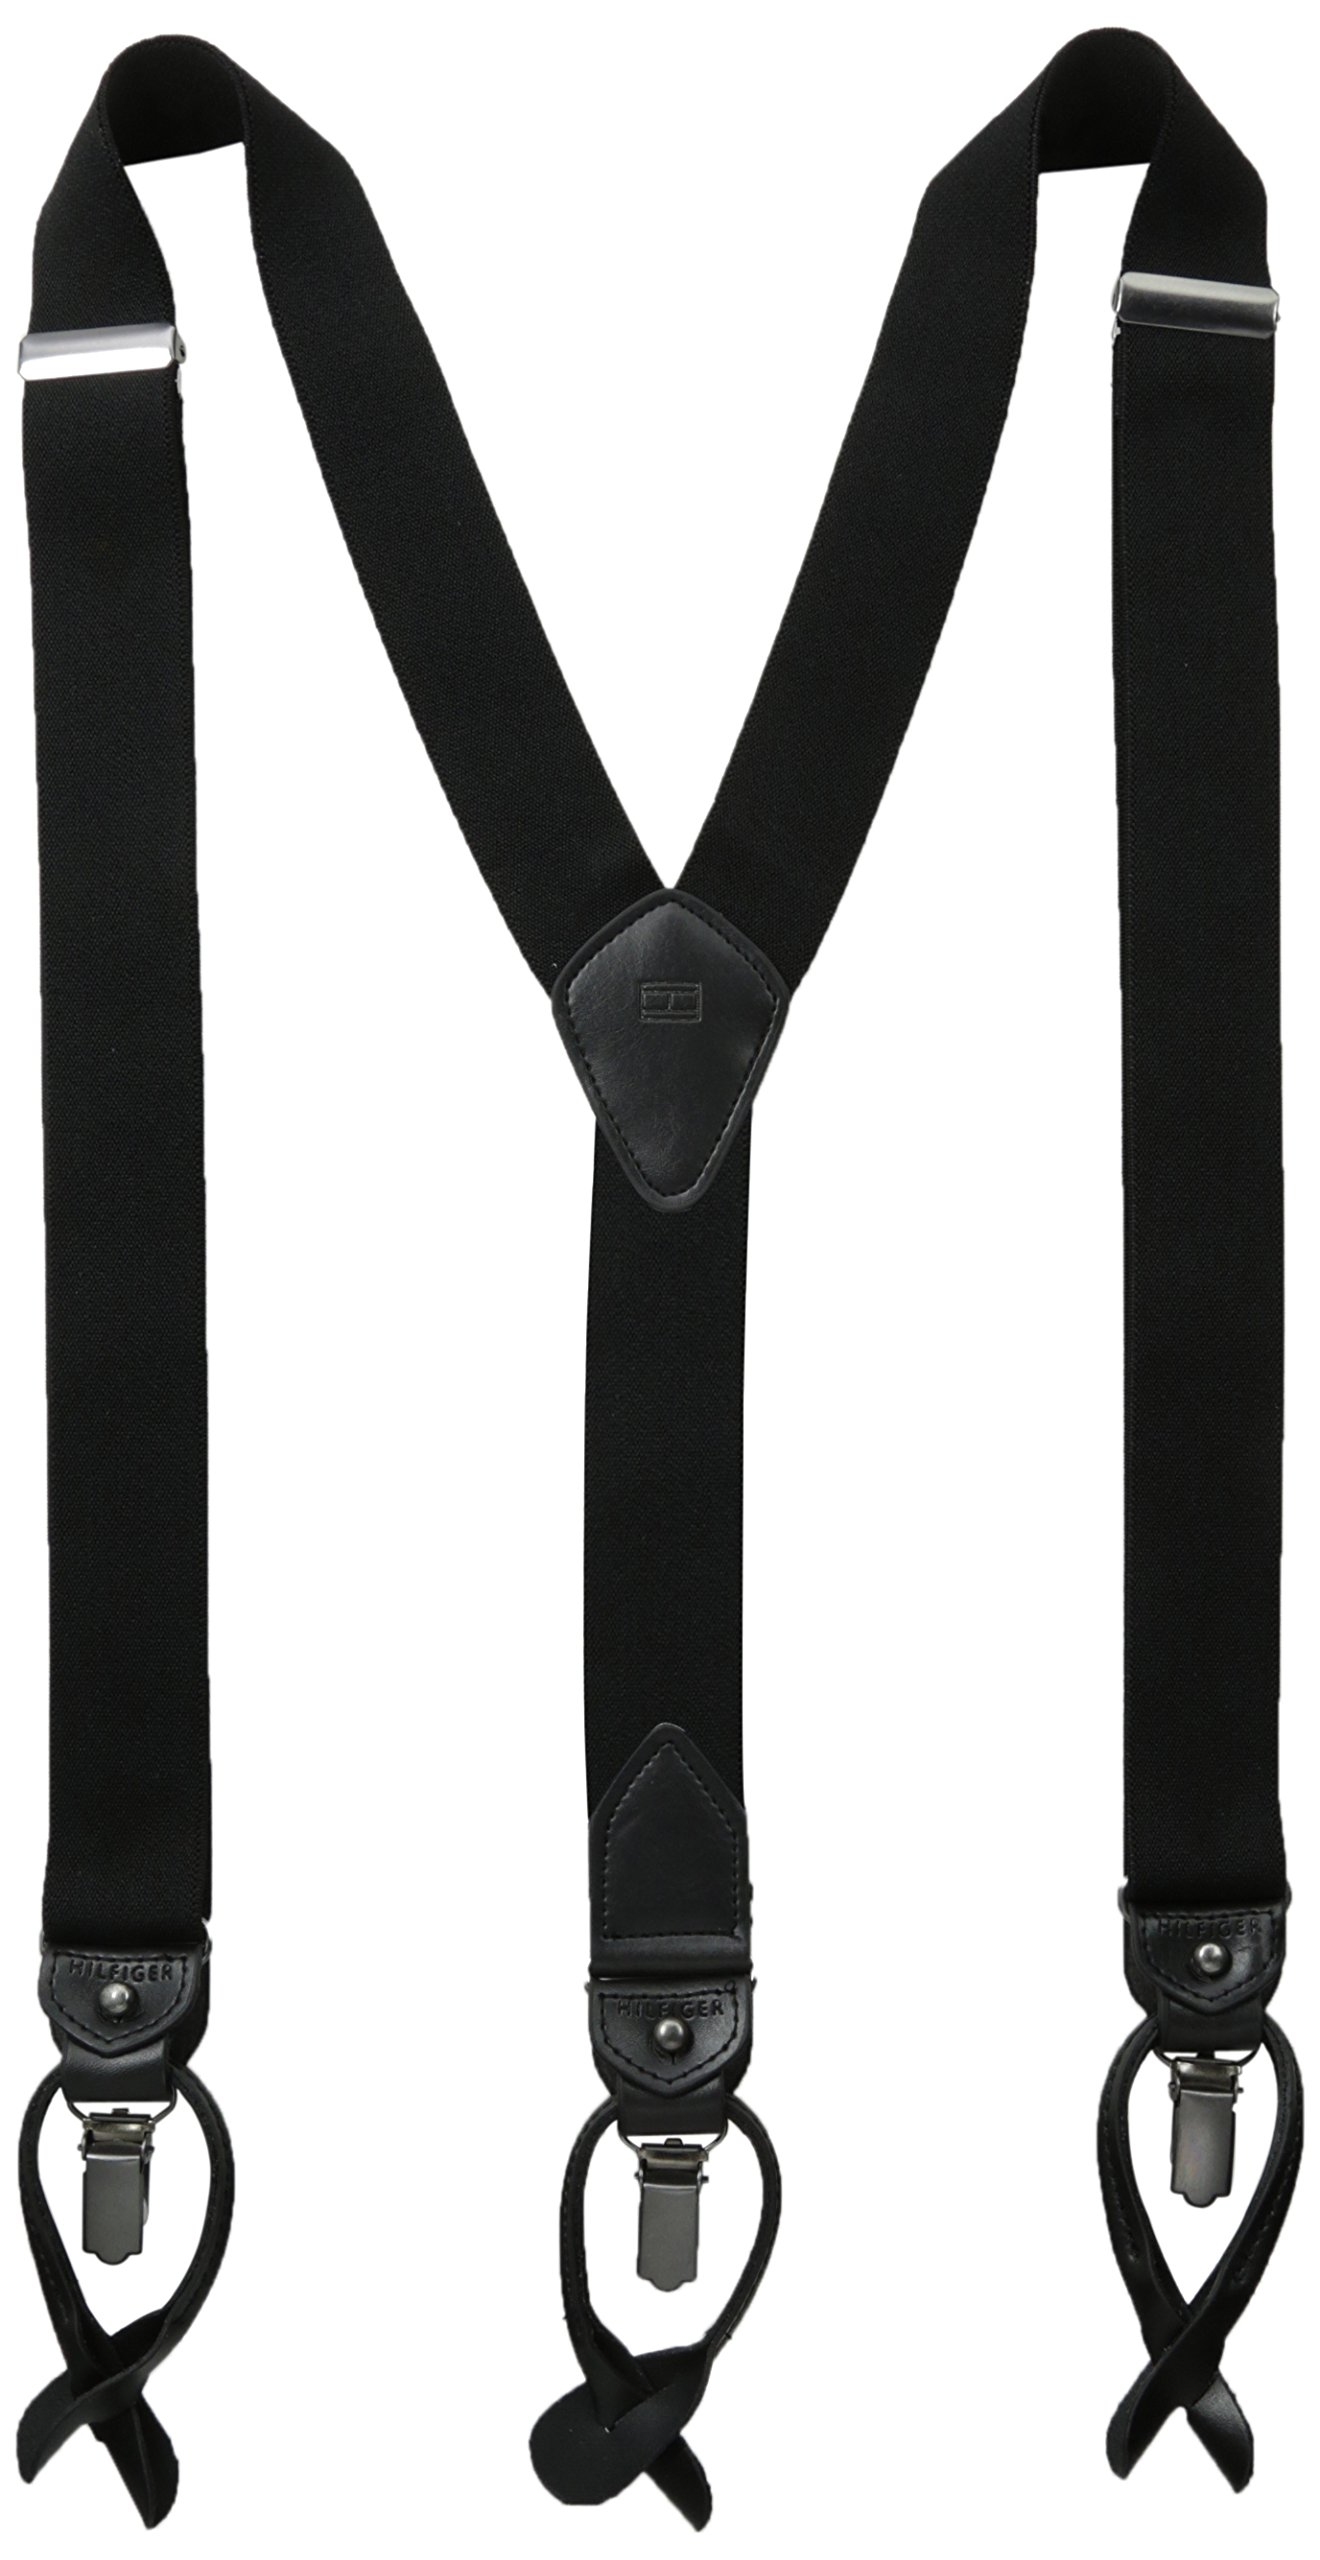 Tommy Hilfiger Men's Clips Suspenders – For Dress Tuxedo Pants with Y Back and Adjustable Straps